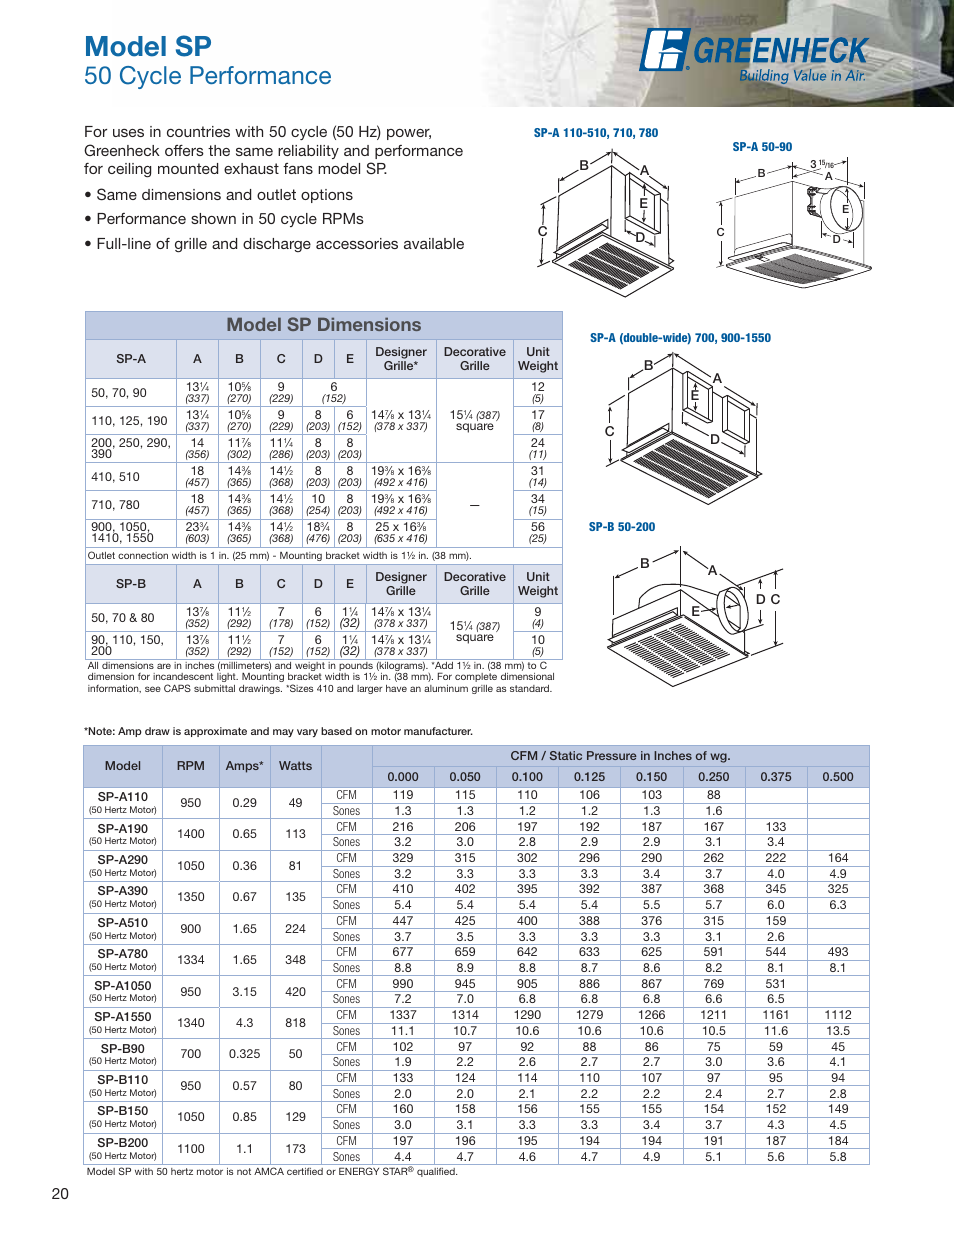 Model sp 50 cycle performance model sp dimensions greenheck model sp 50 cycle performance model sp dimensions greenheck fan centrifugal ceiling and cabinet exhaust fans csp user manual page 20 24 aloadofball Choice Image